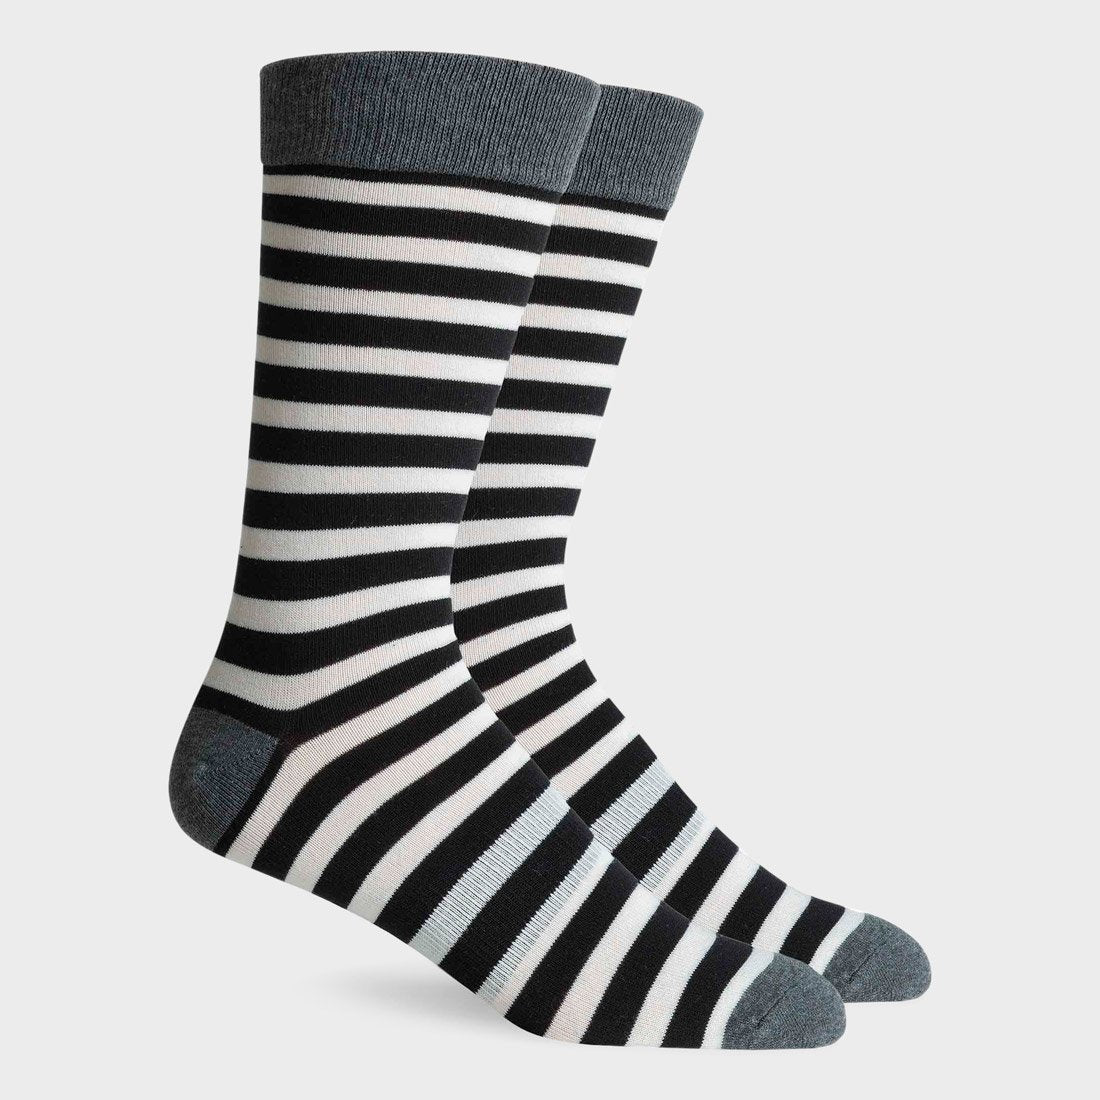 Richer Poorer Theo Socks Black